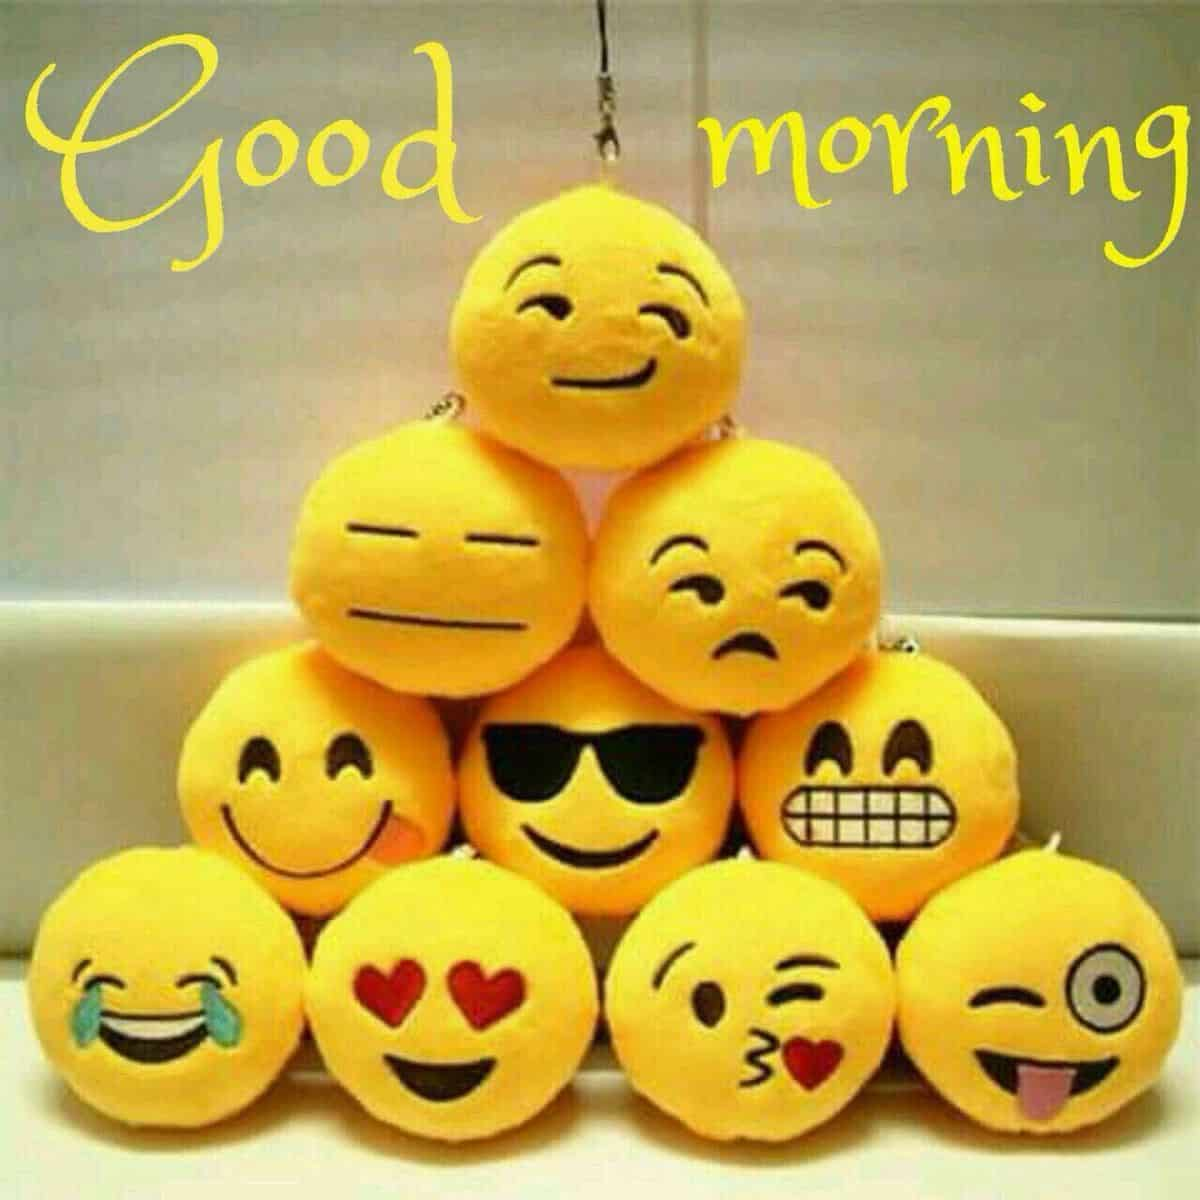 Good morning smilies